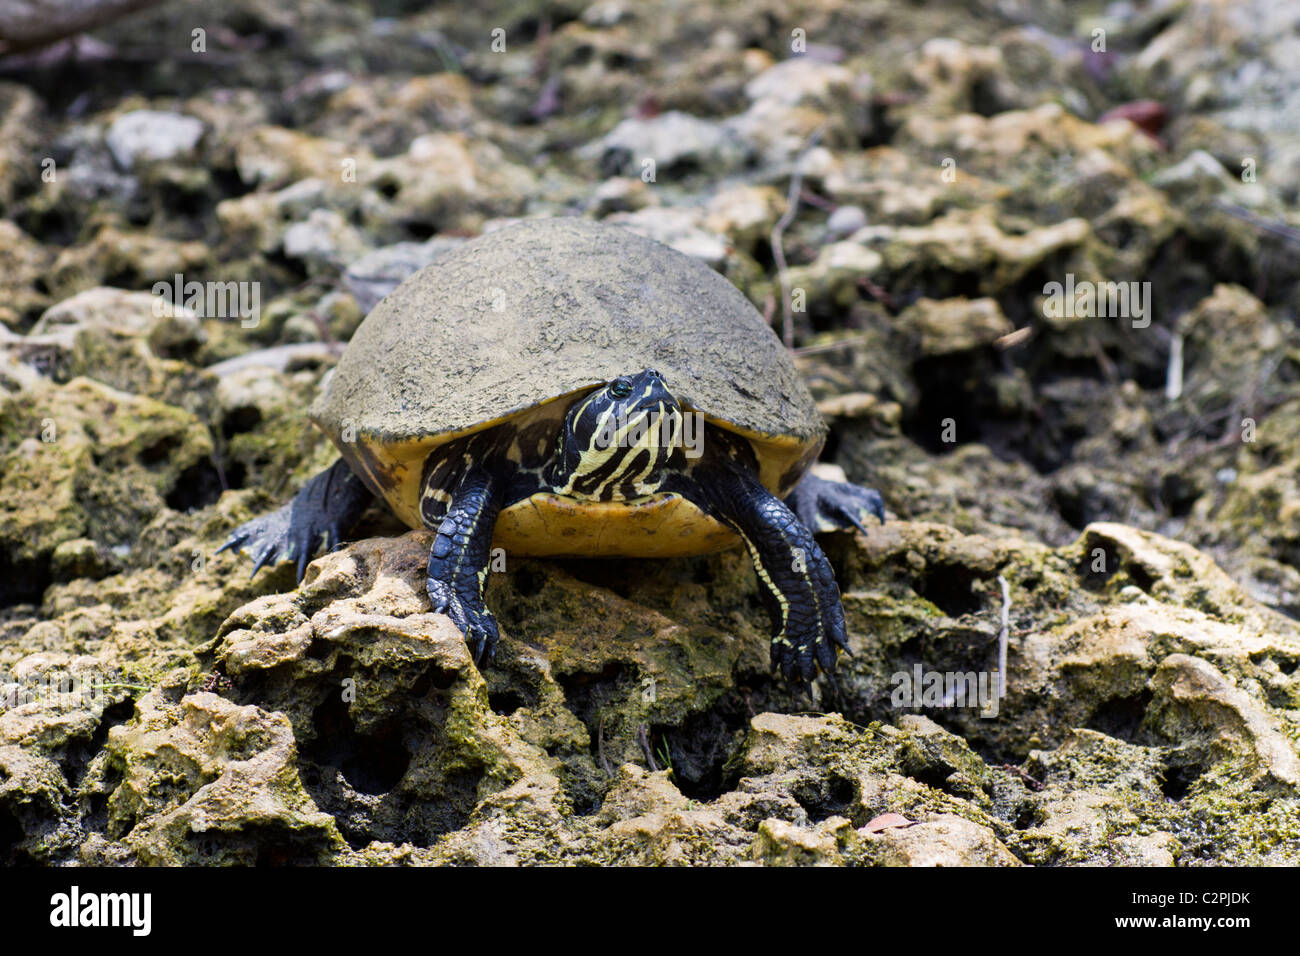 Florida red-bellied turtle, Pseudemys nelsoni, Big Cypress Swamp, Florida, USA Stock Photo